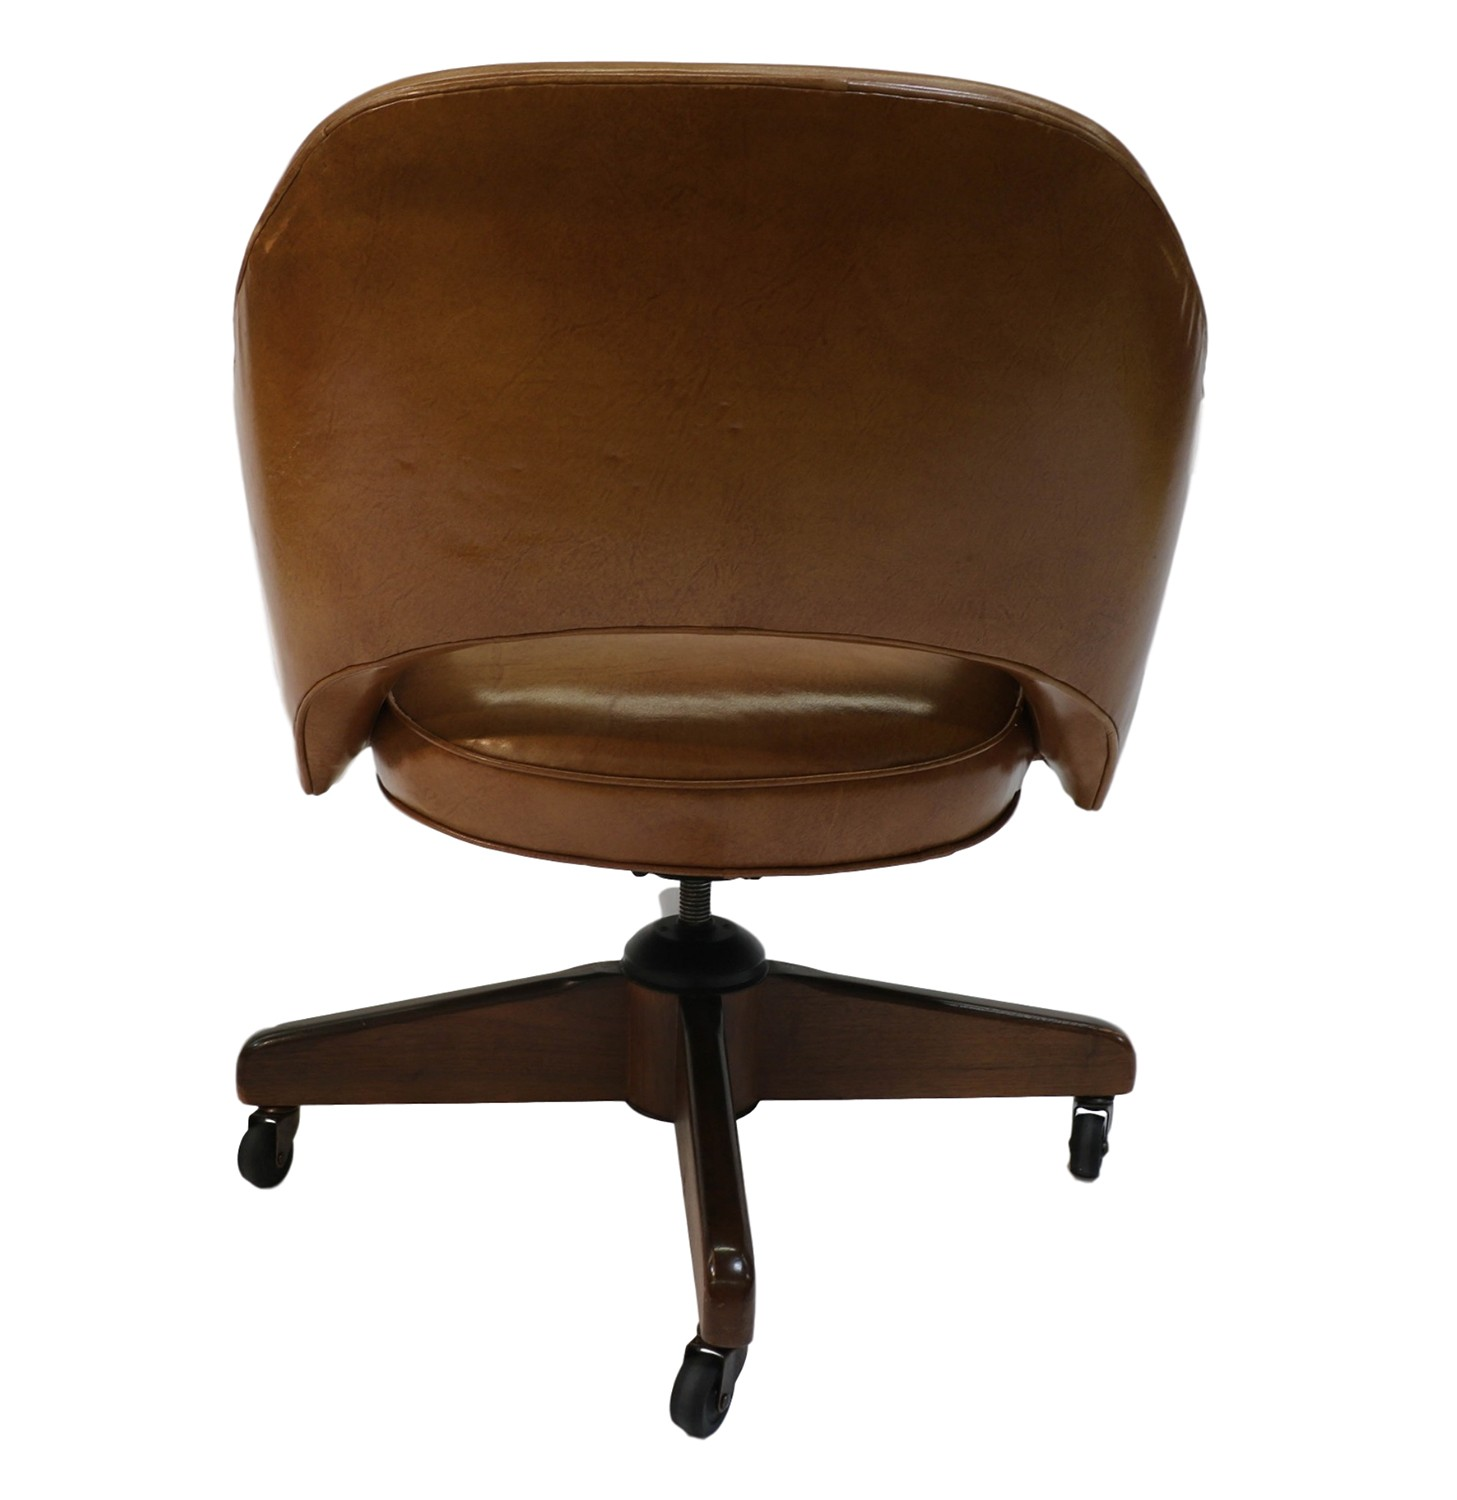 Executive Swivel Armchair Eero Saarinen style